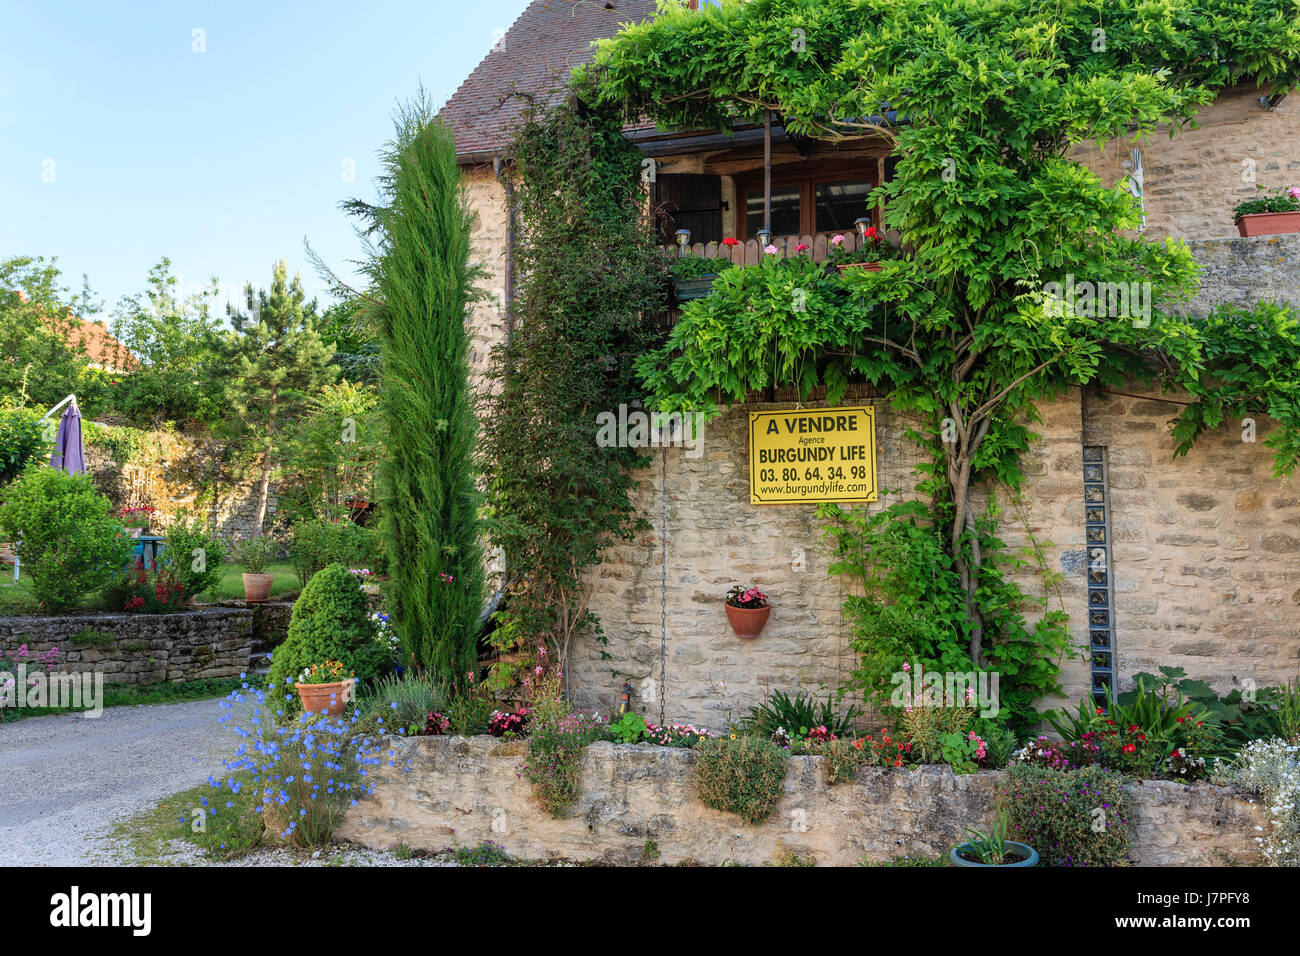 House for sale, France, Burgundy region, Cote d'Or, Chateauneuf en Auxois, or Chateauneuf, labelled Les Plus - Stock Image